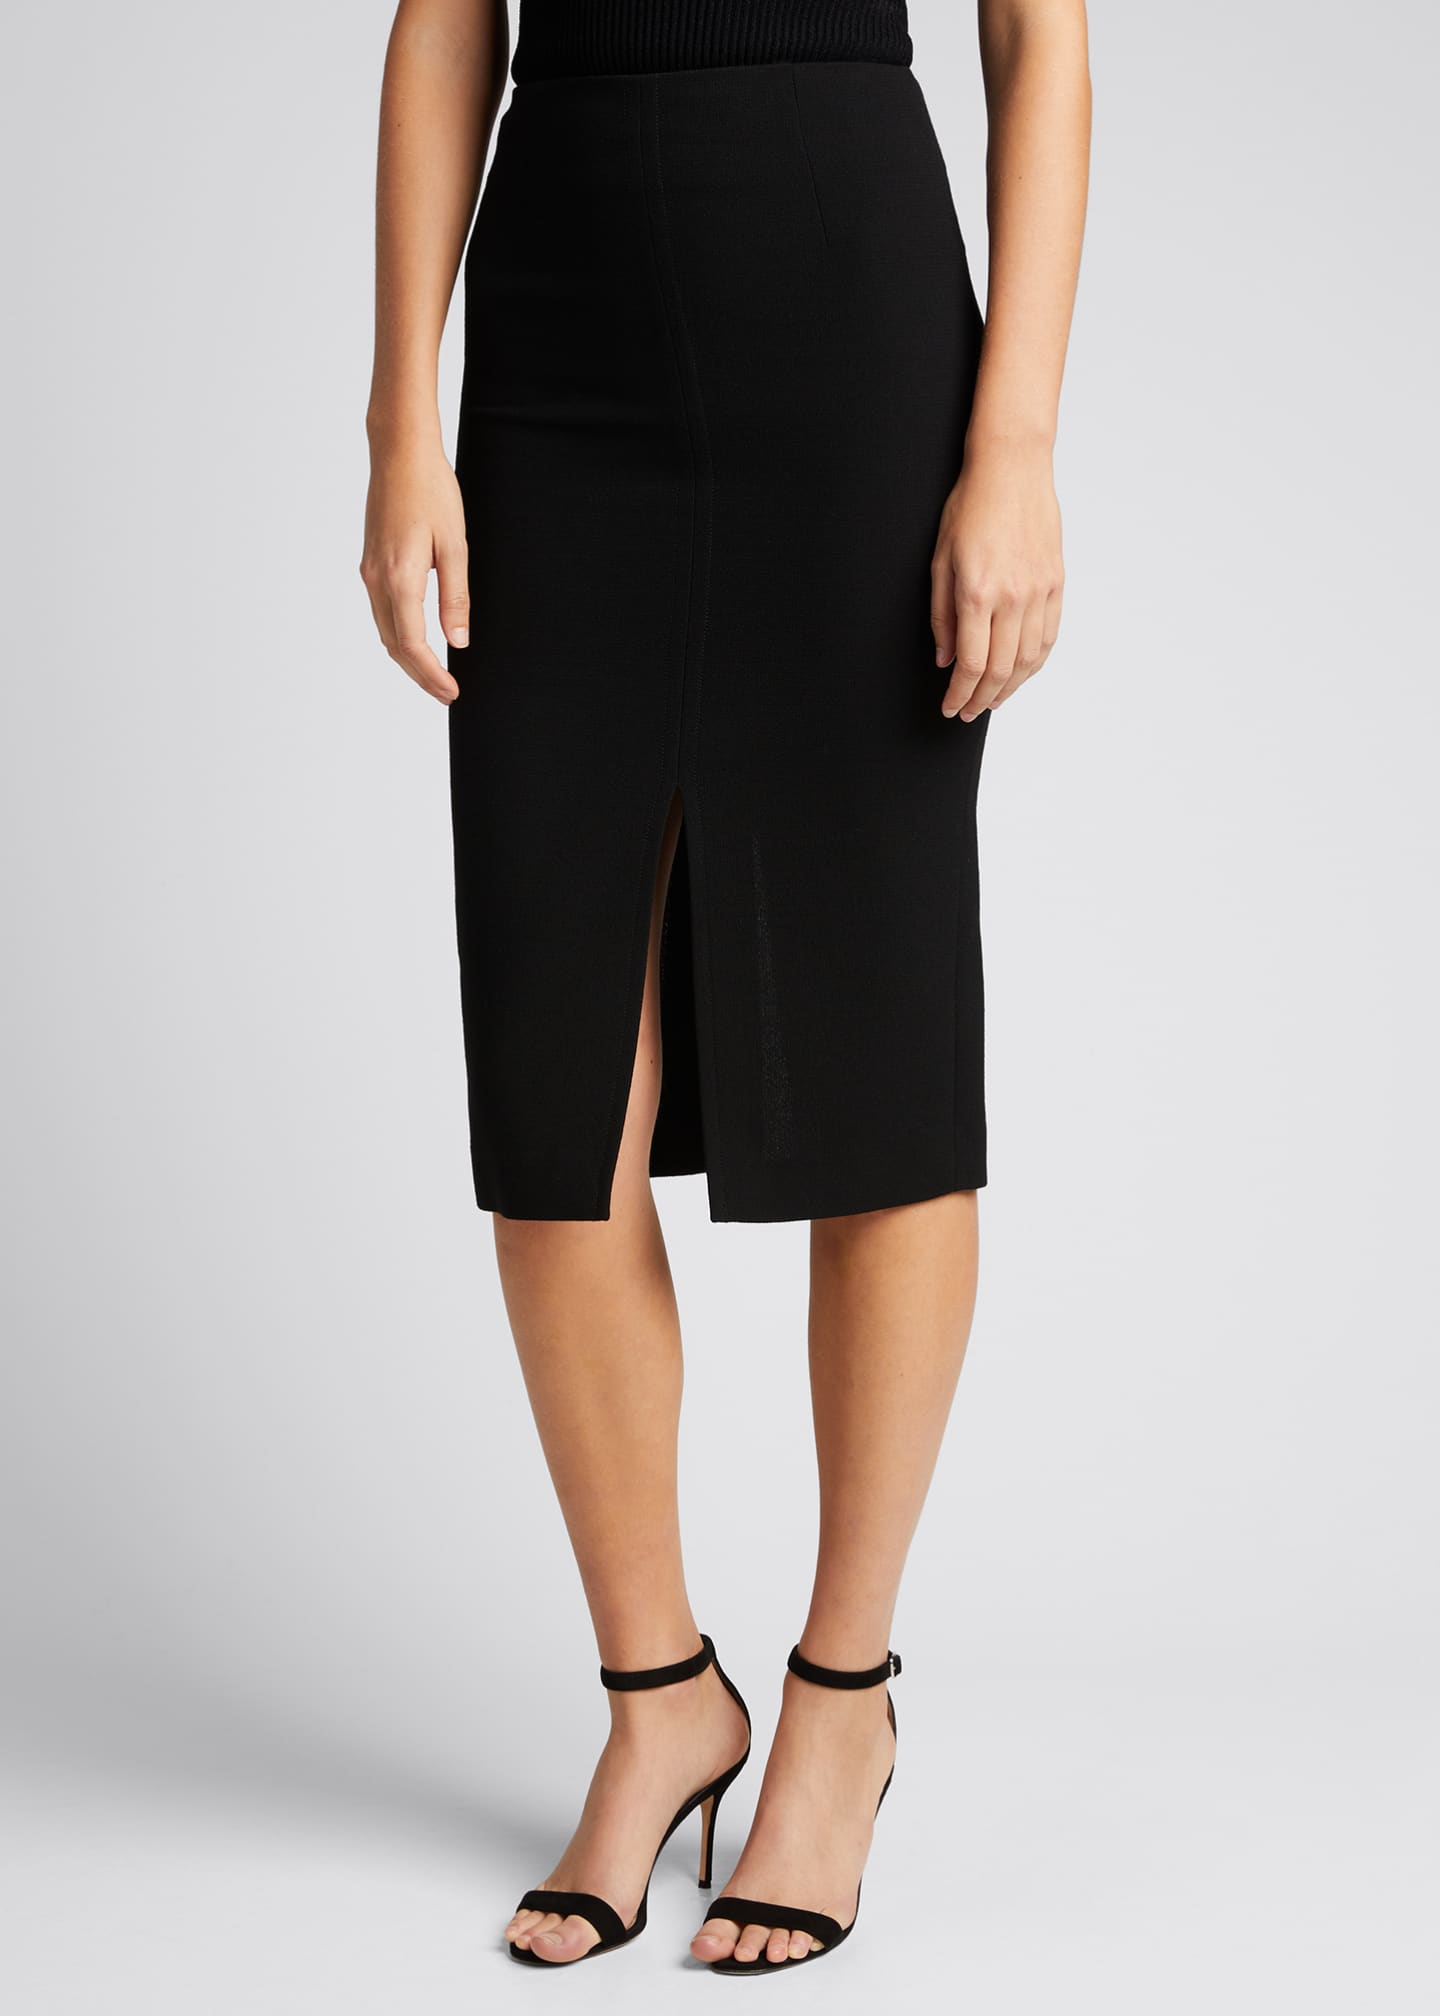 Image 3 of 3: Moka Wool Pencil Skirt